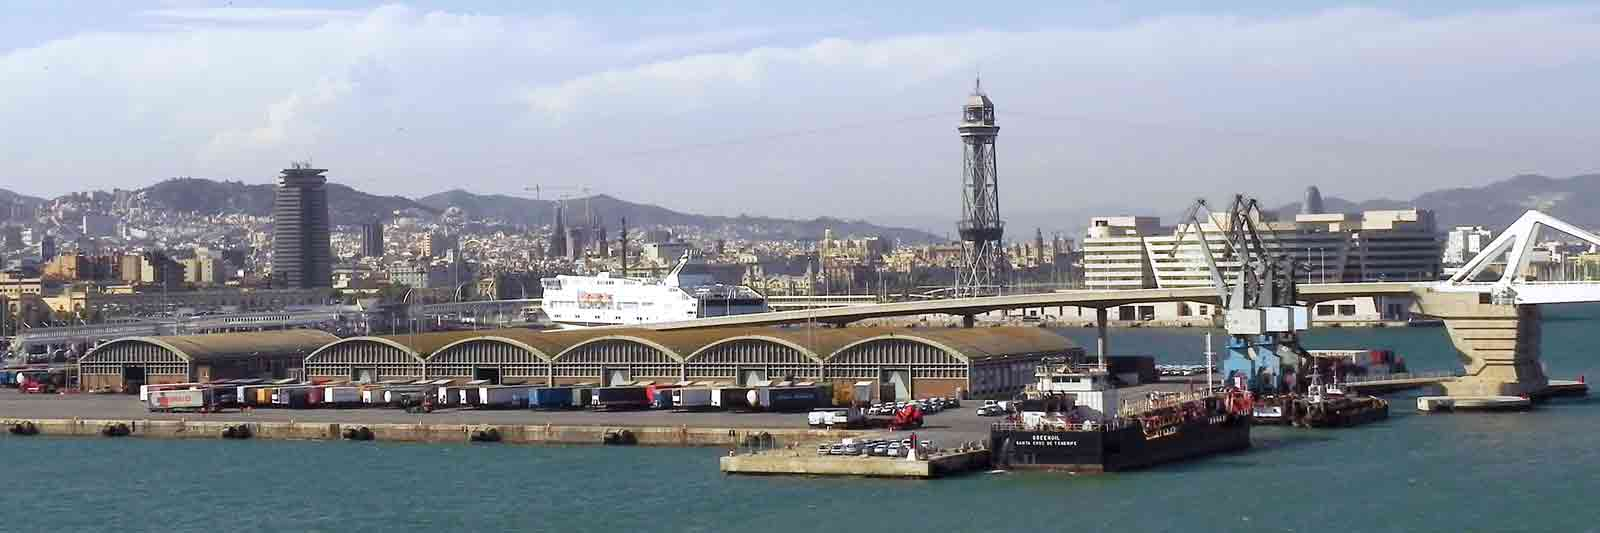 Panoramic Photo of Barcelona Cruise Ship Port